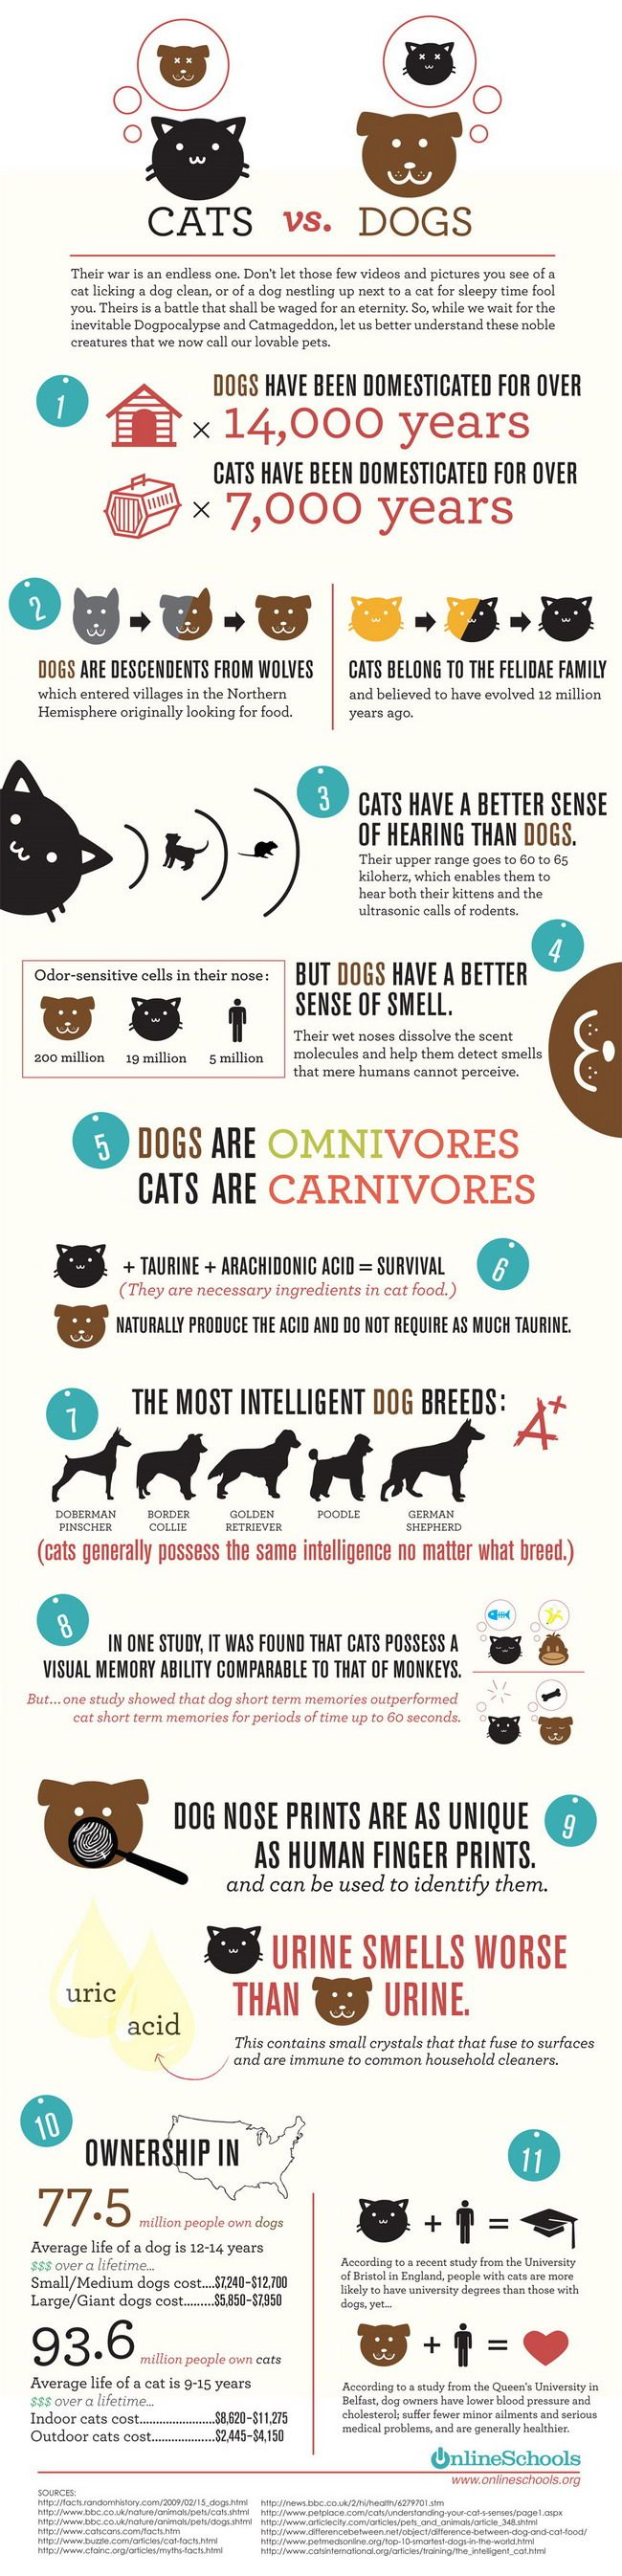 if cats have a better sense of hearing, then why does my dog response much better than my cat? :P haha